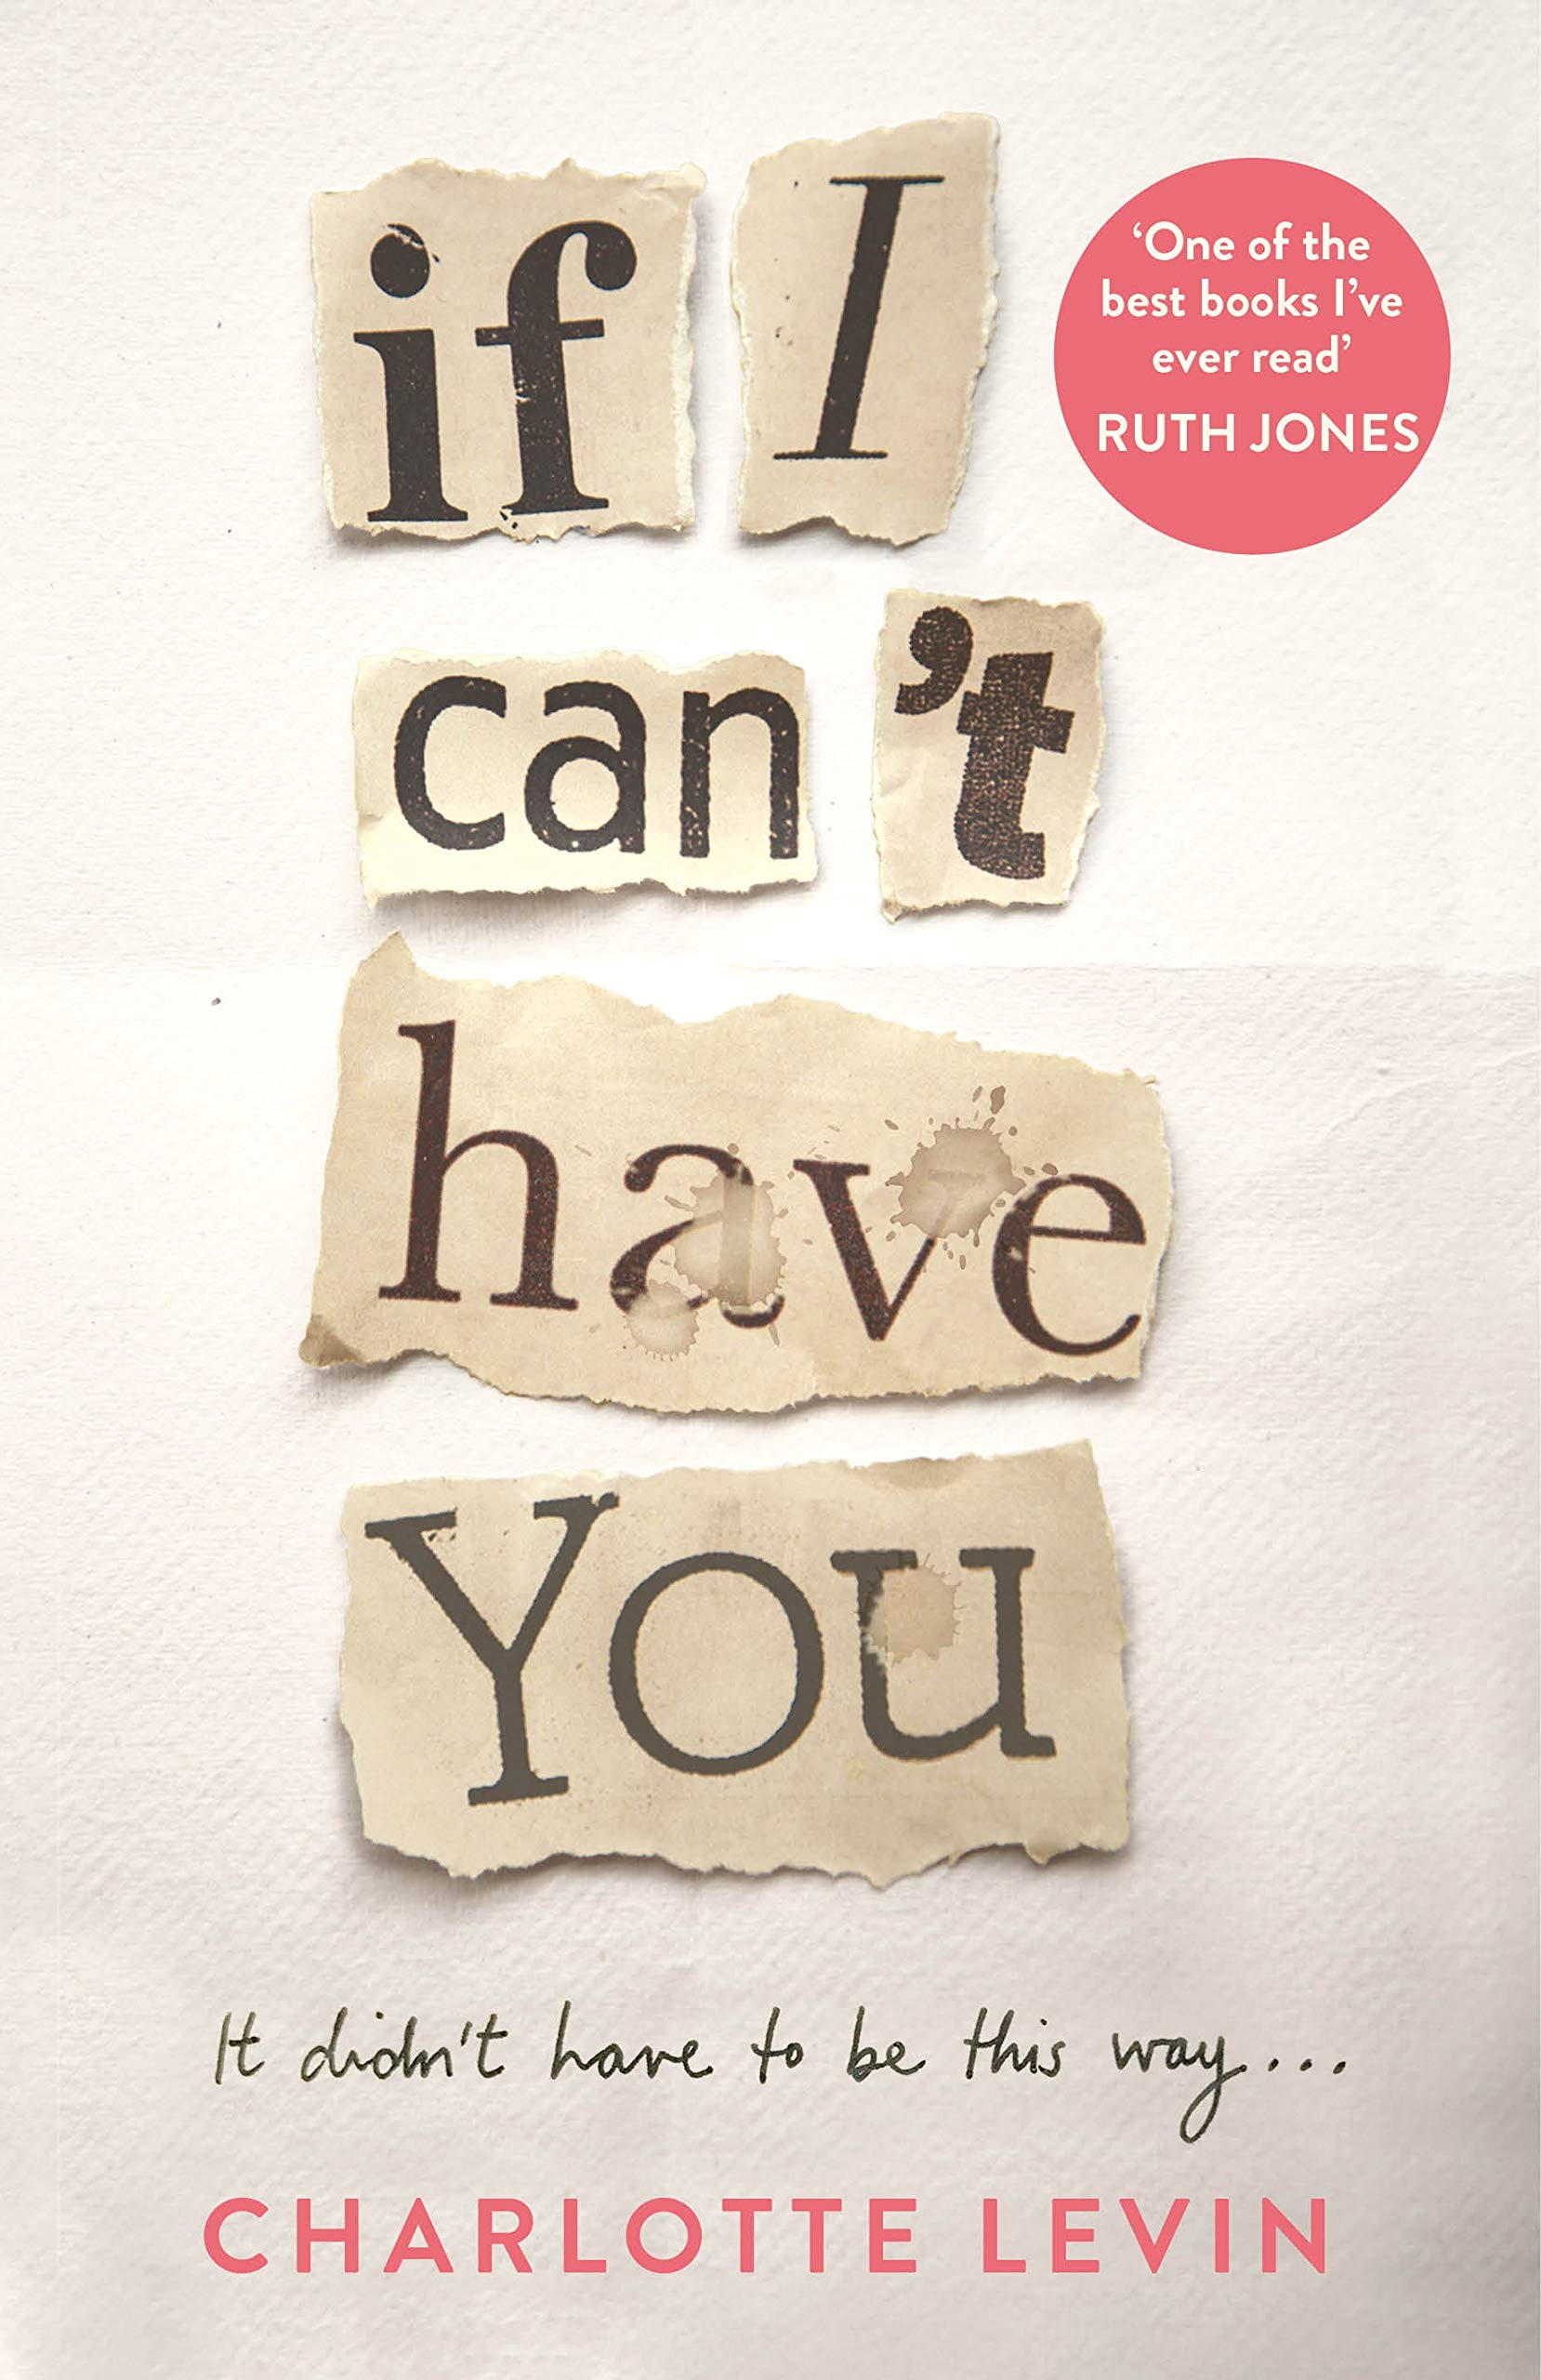 If I Can't Have You: Amazon.co.uk: Levin, Charlotte: 9781529032390 ...